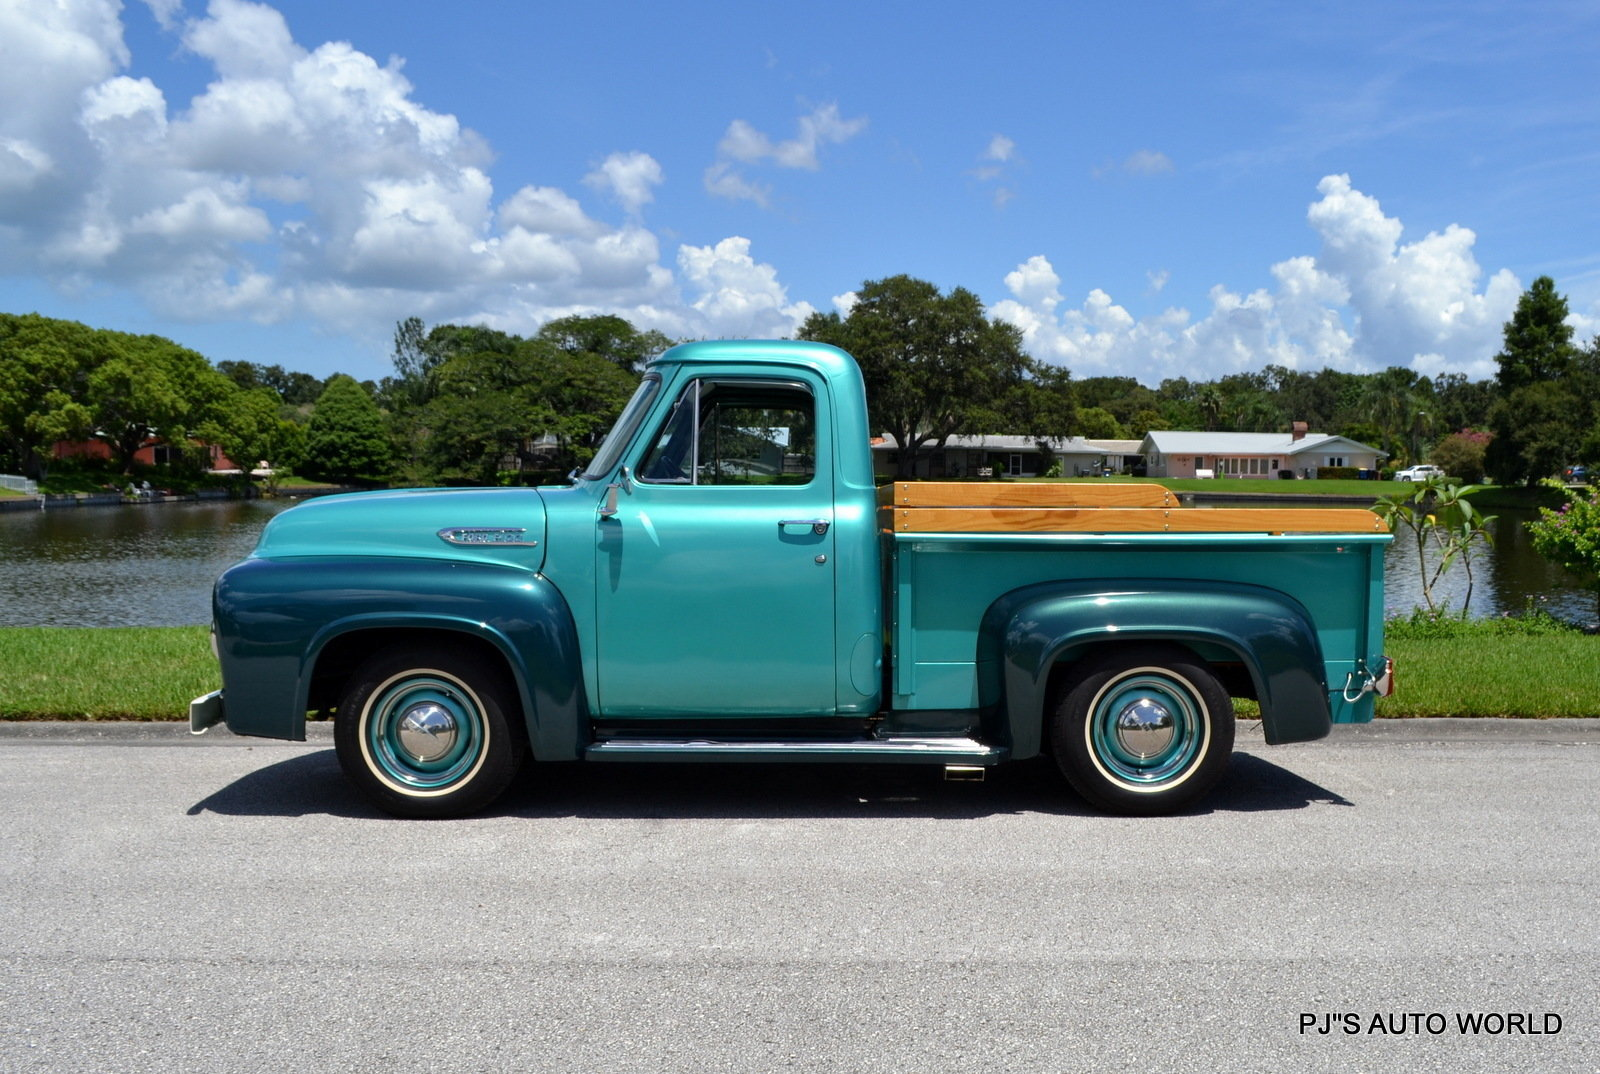 1954 Ford F100 Pjs Auto World Classic Cars For Sale Pick